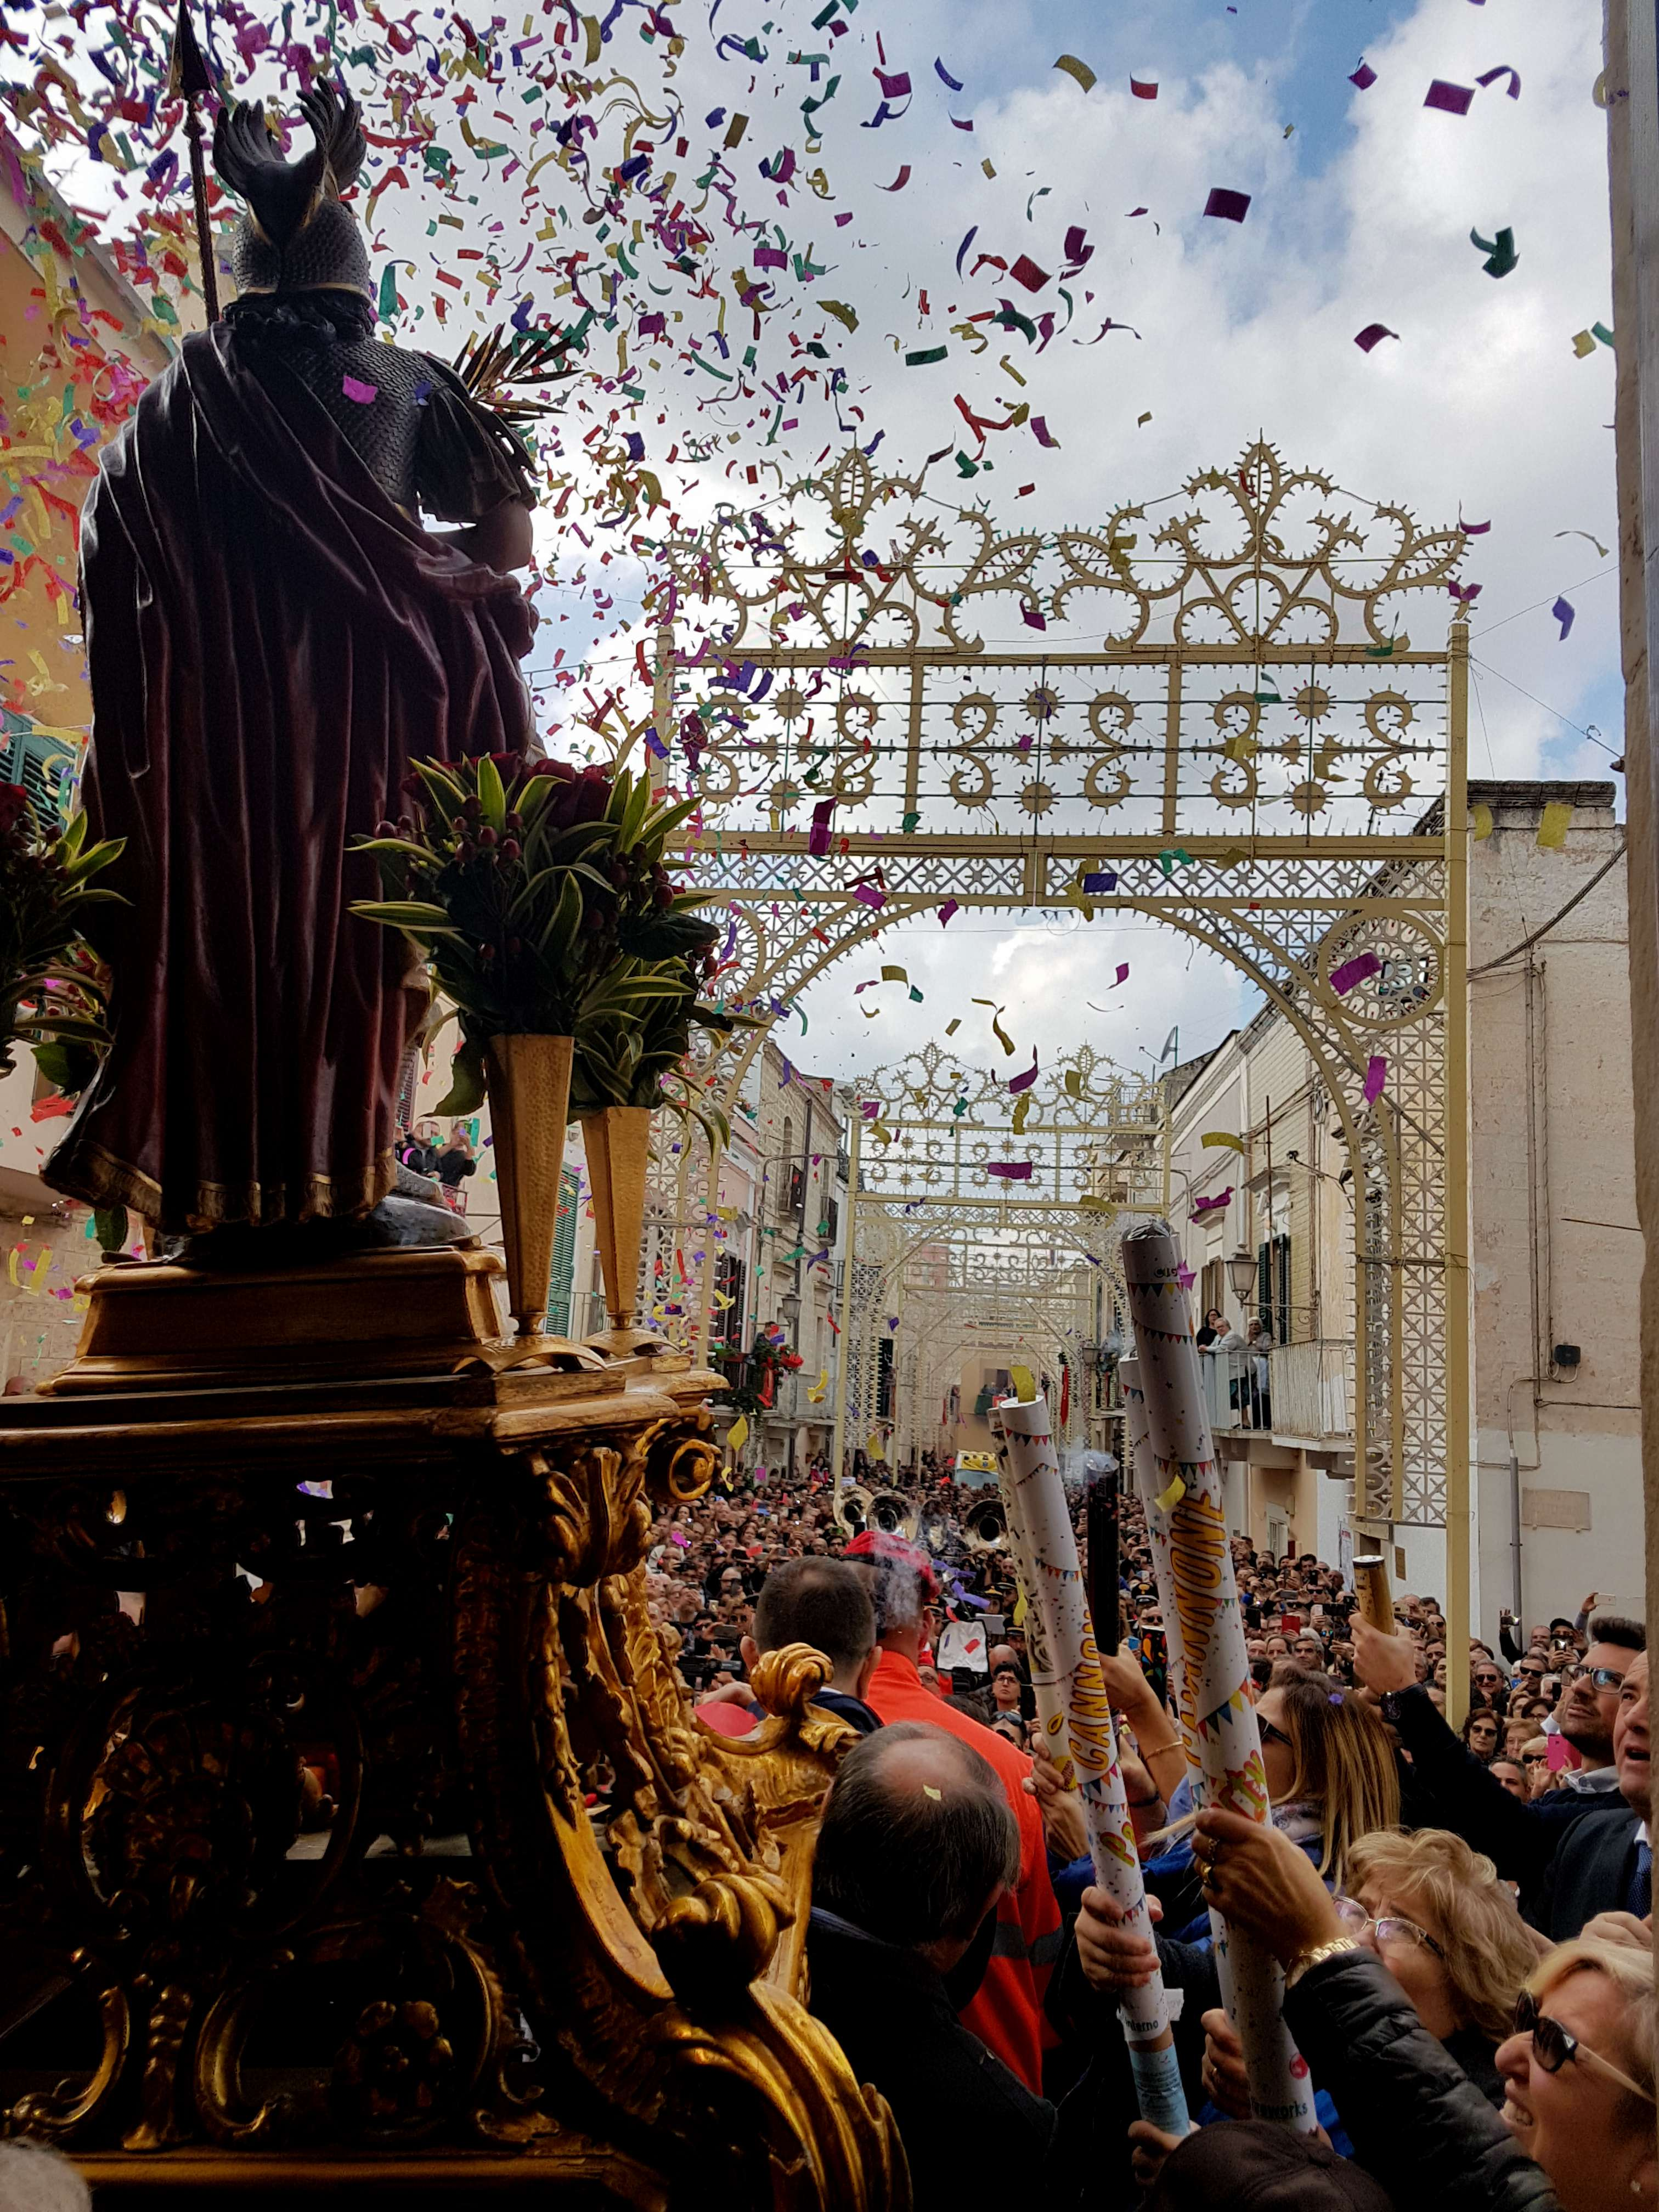 Adelfia is one of the best places to visit in Puglia, Italy, for the San Trifone Adelfia festival